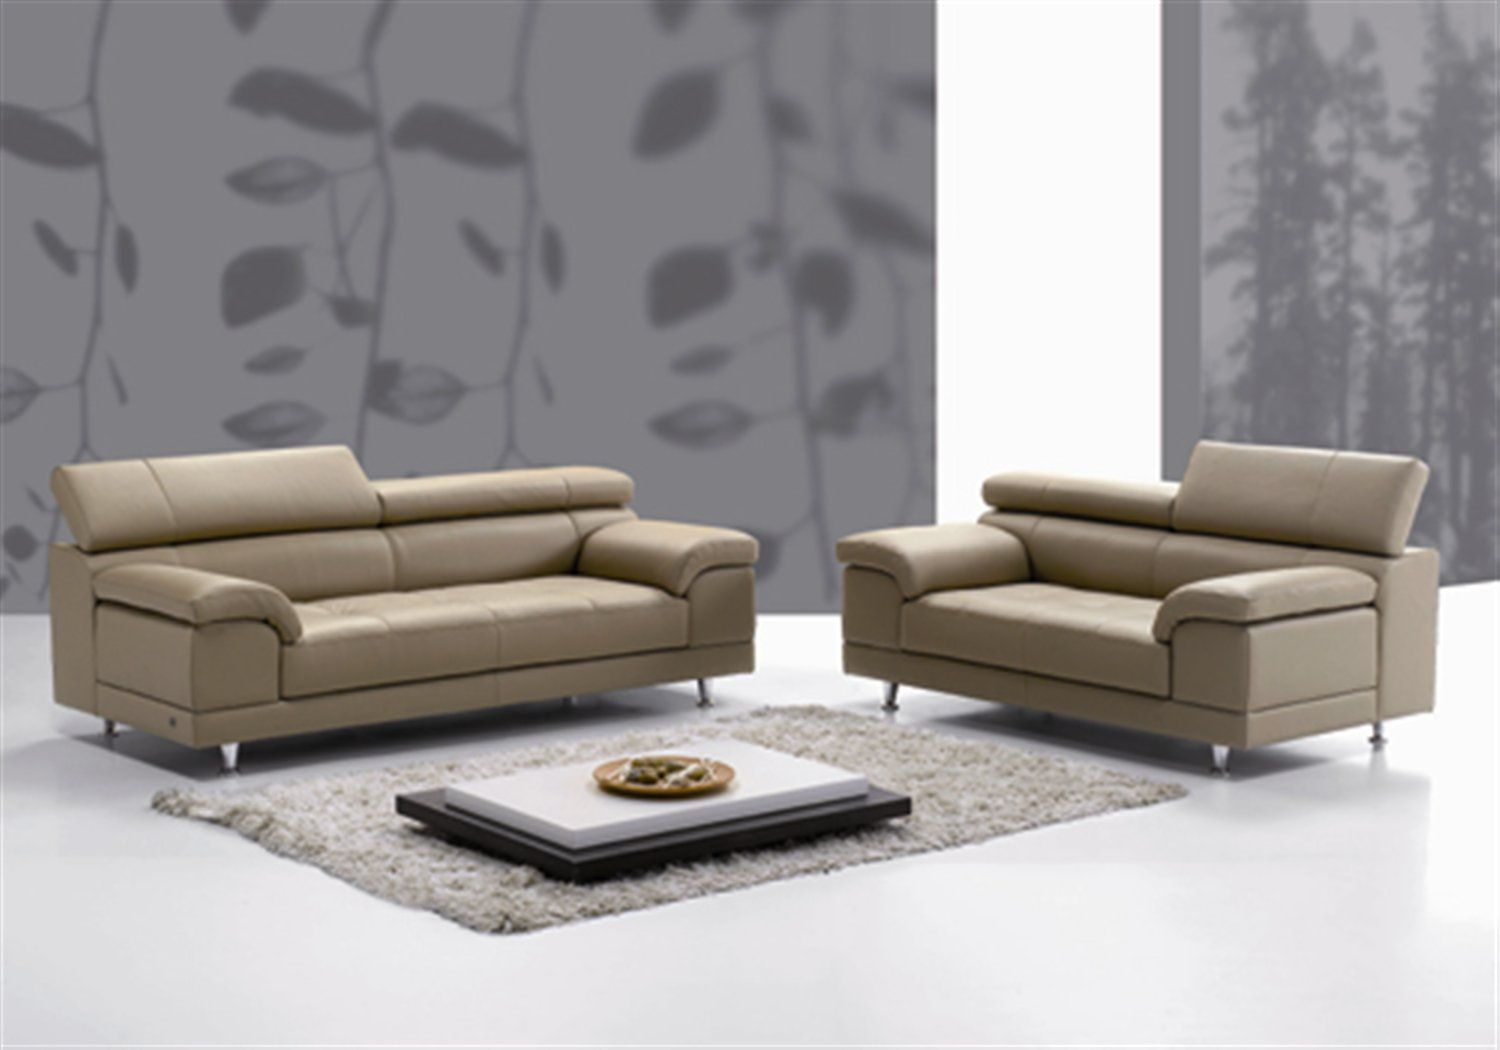 Why You Should Buy Italian Leather Sofa Contemporary Leather Sofa Sofa Decor Contemporary Leather Furniture